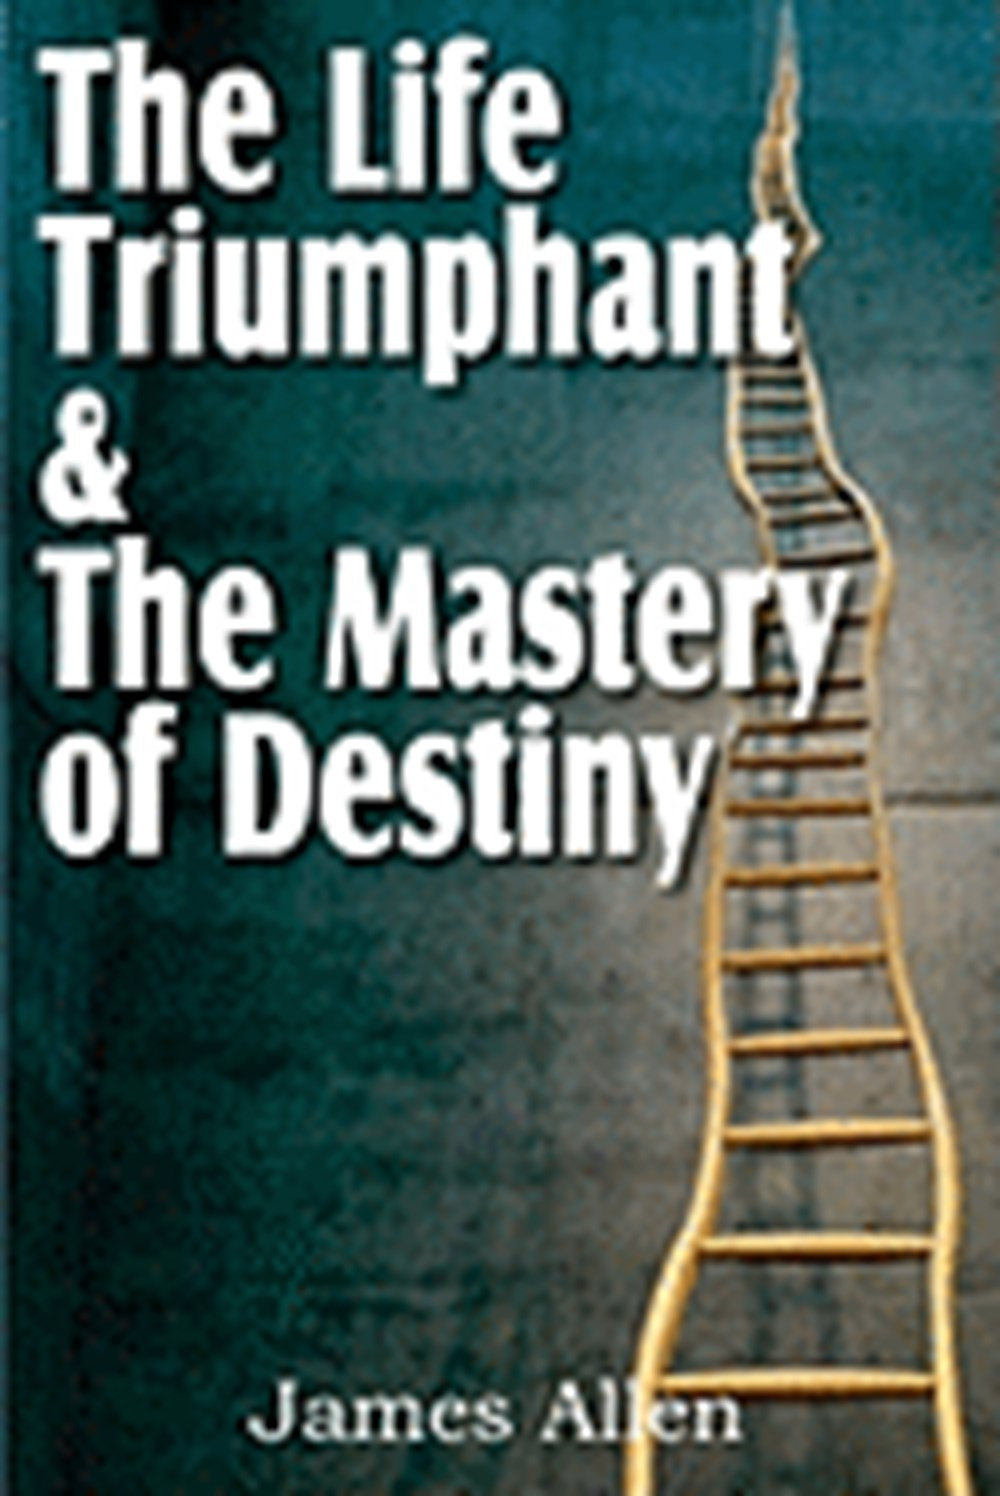 Life Triumphant & the Mastery of Destiny